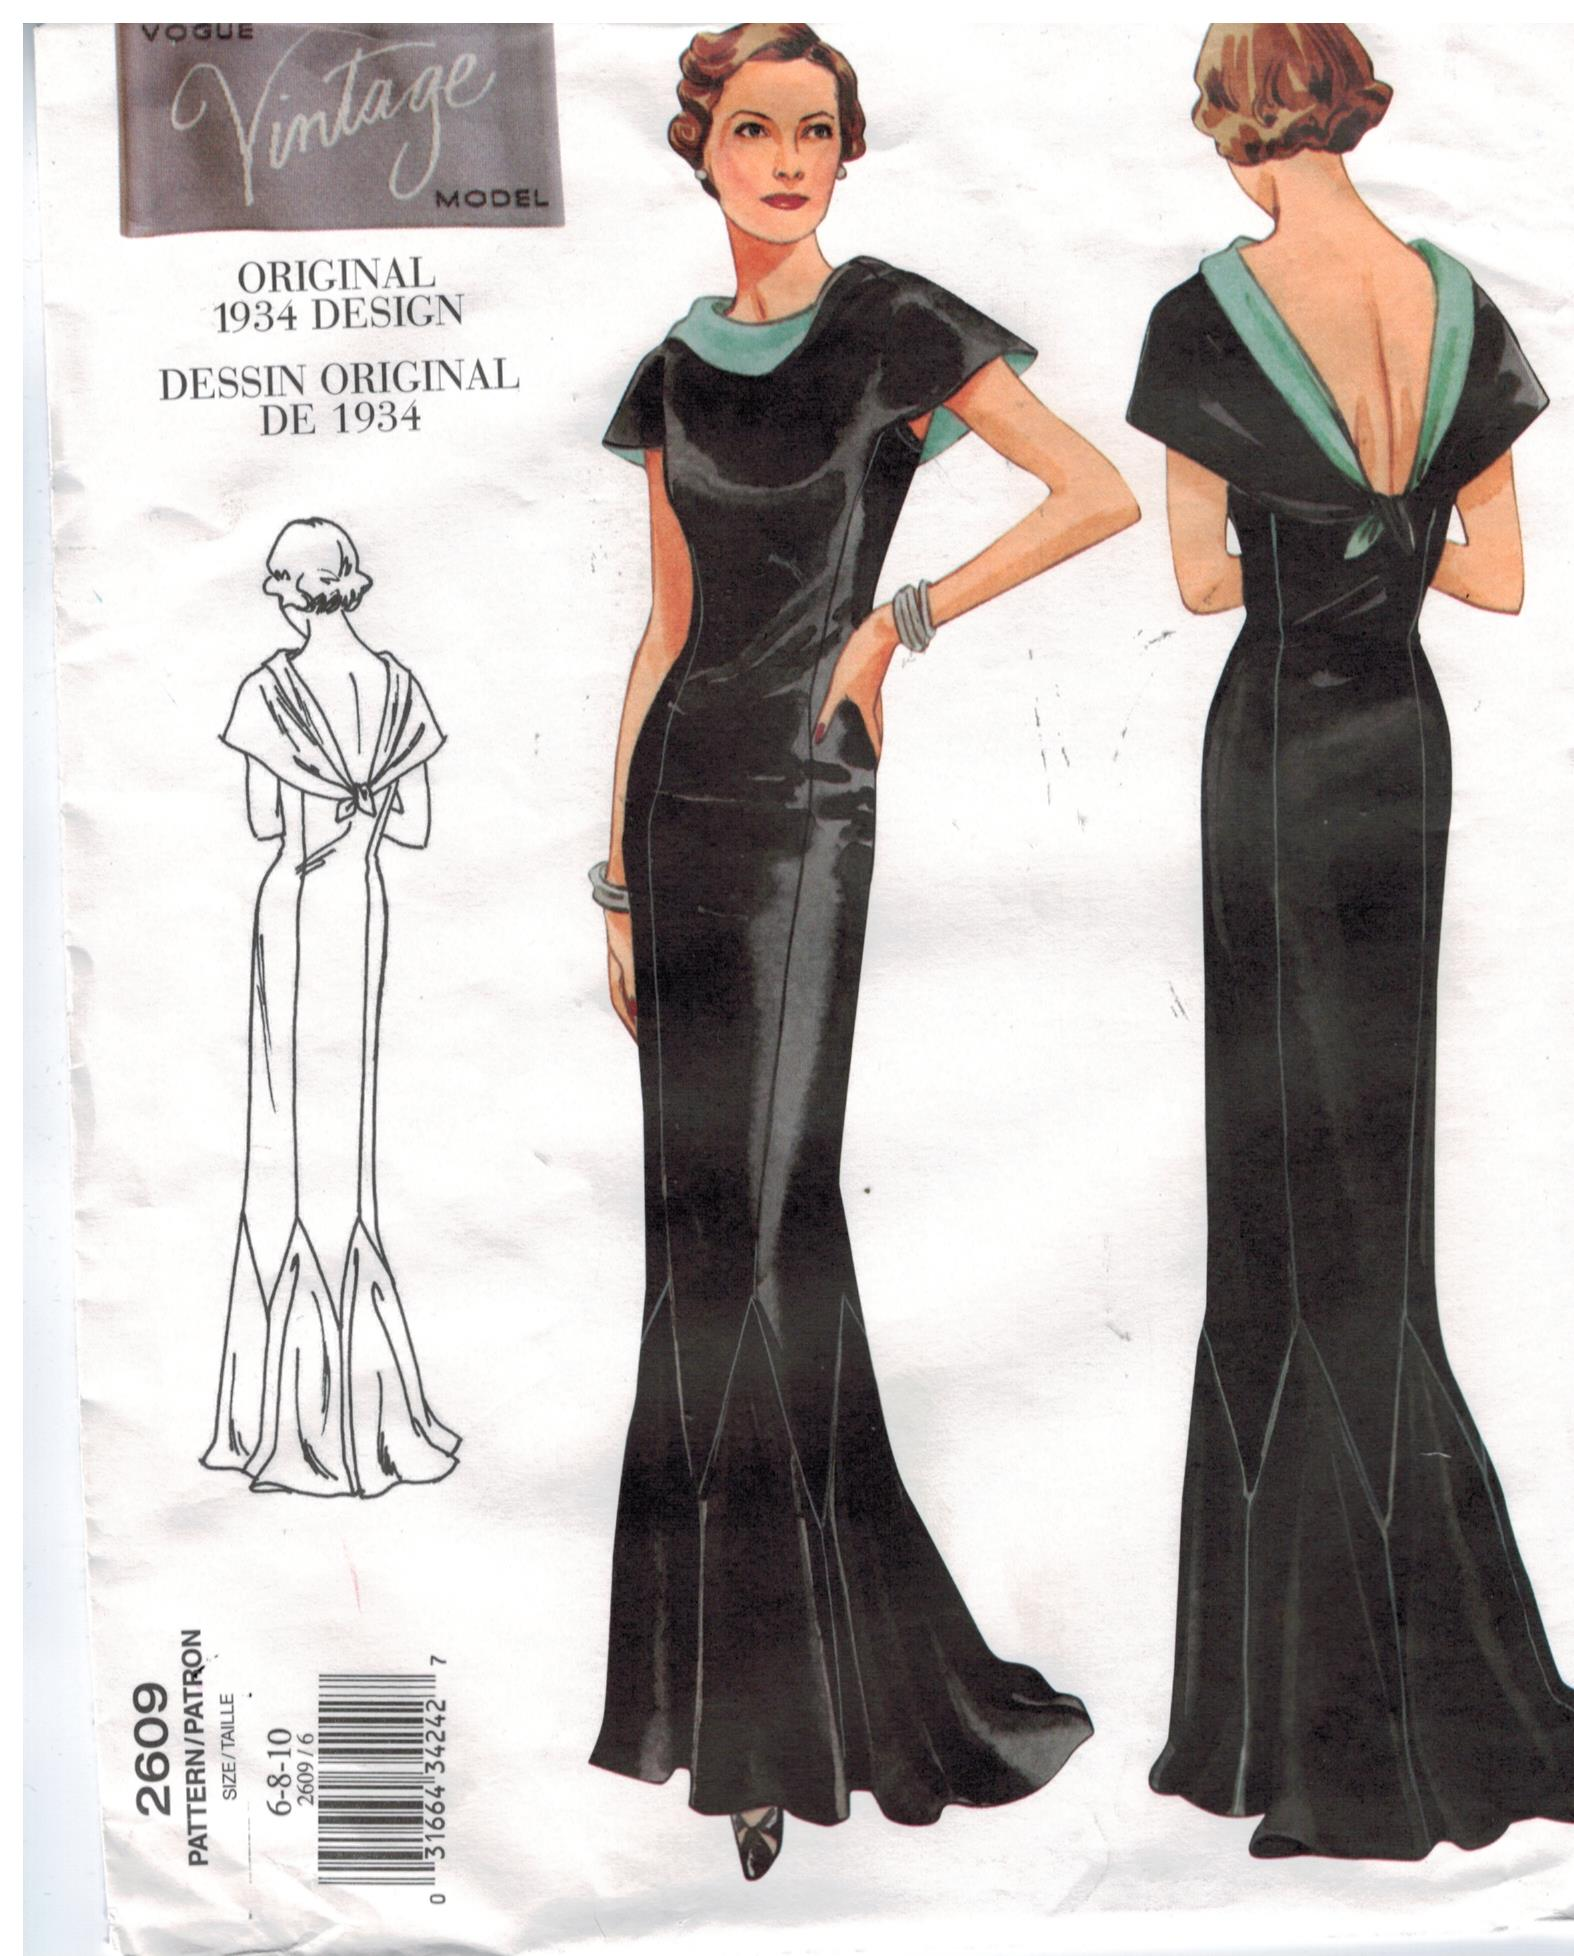 Vogue Pattern 2609 Vintage Design evening gown from the 1930s Size 6 ...